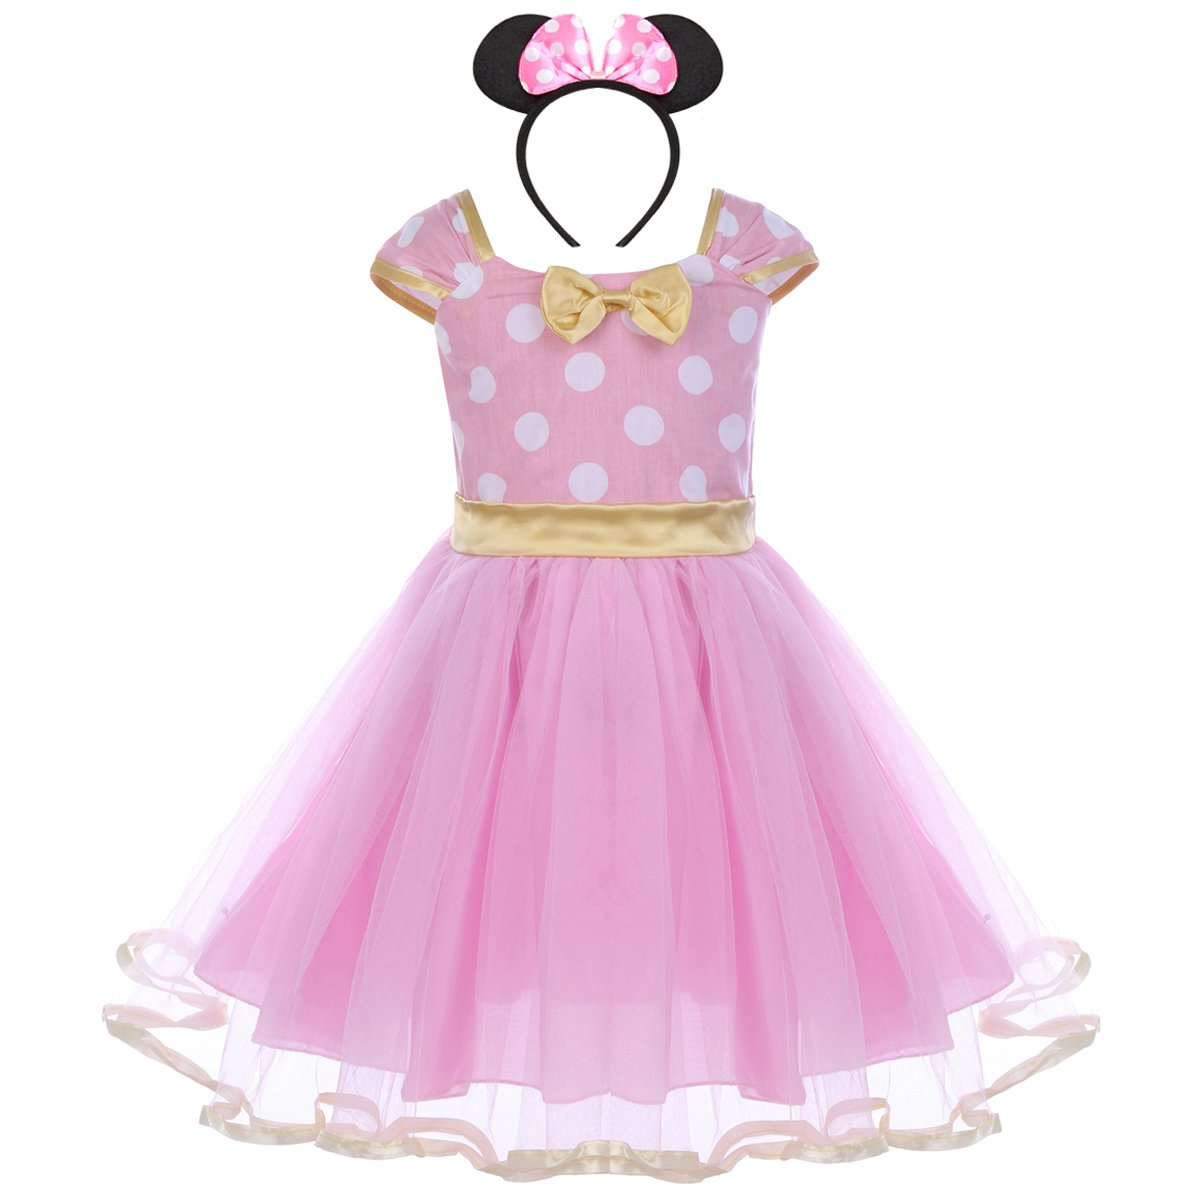 IWEMEK Toddler Girl Princess Polka Dots Christmas Birthday Costume Bowknot Ballet Leotard Tutu Dress up+3D Mouse Ear Headband, Pink & Gold, 2-3 Years